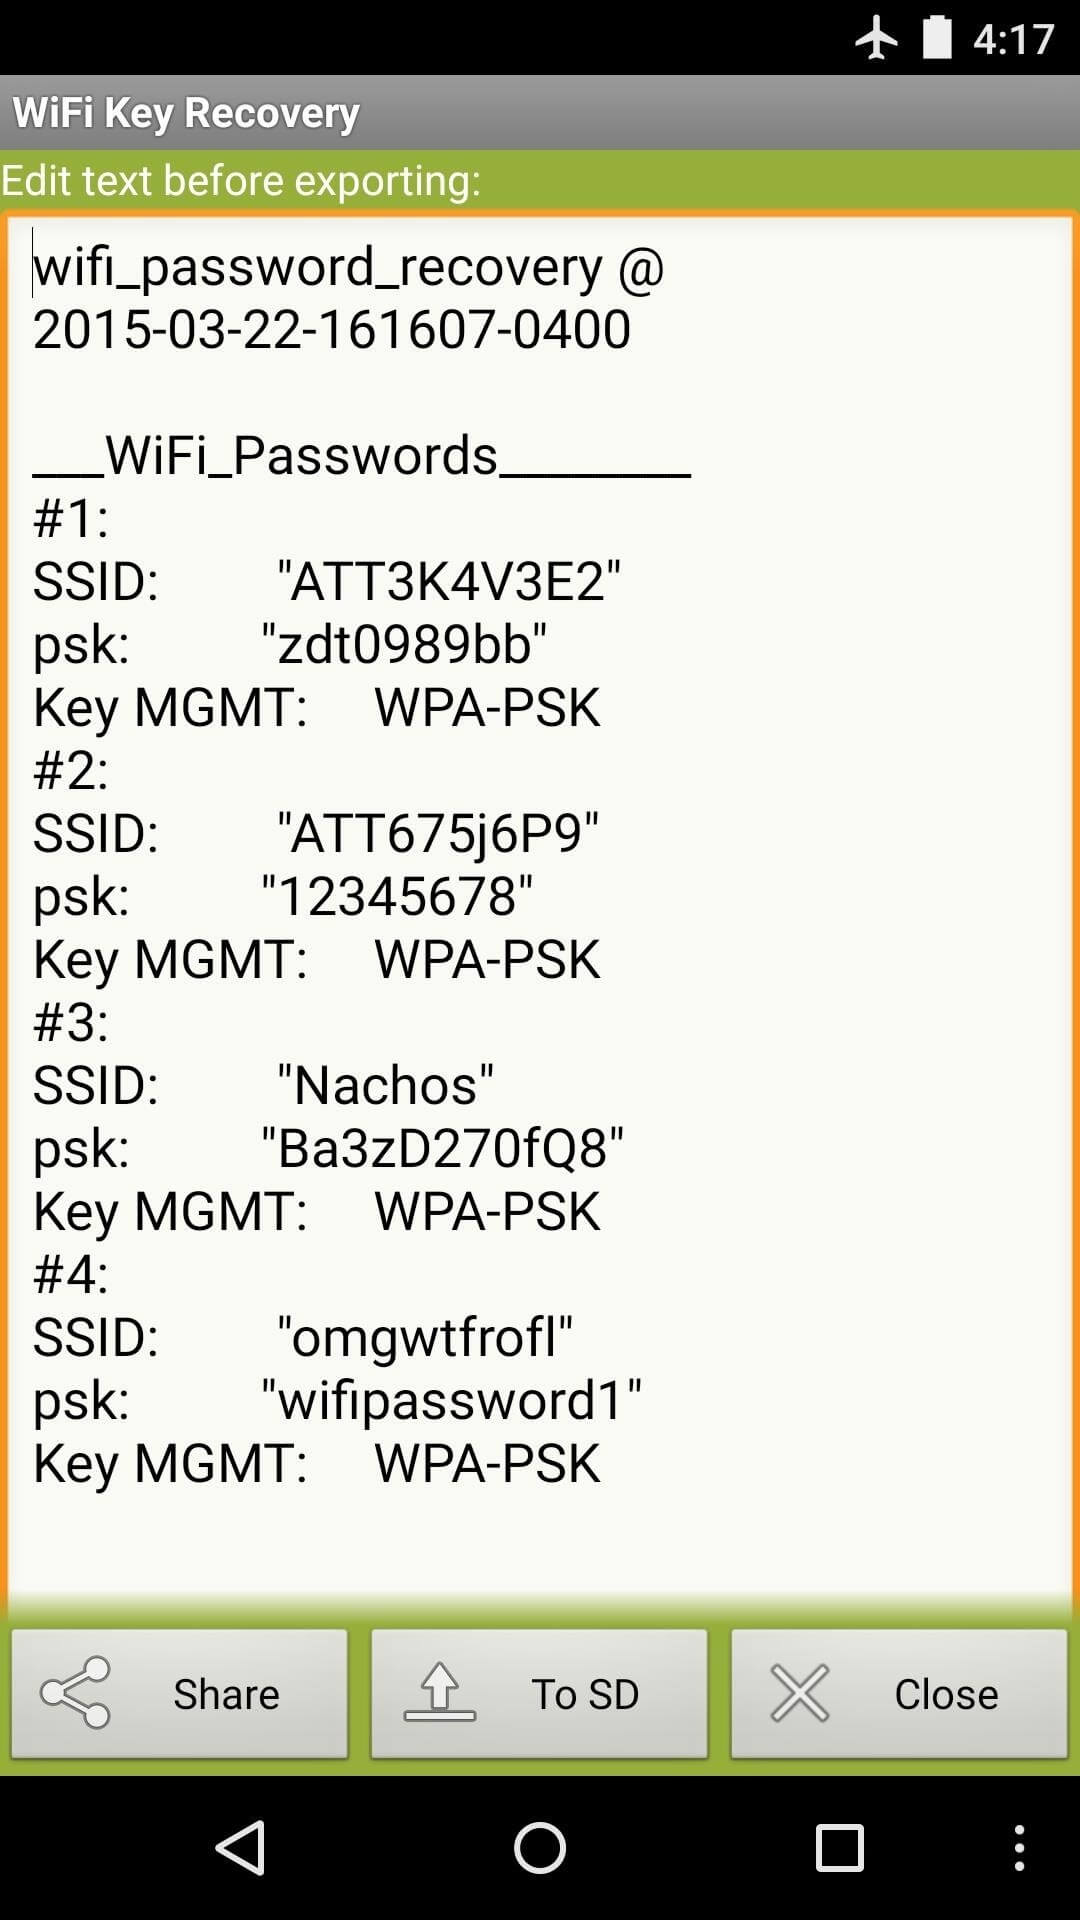 View Saved WiFi Passwords-choose share or to SD